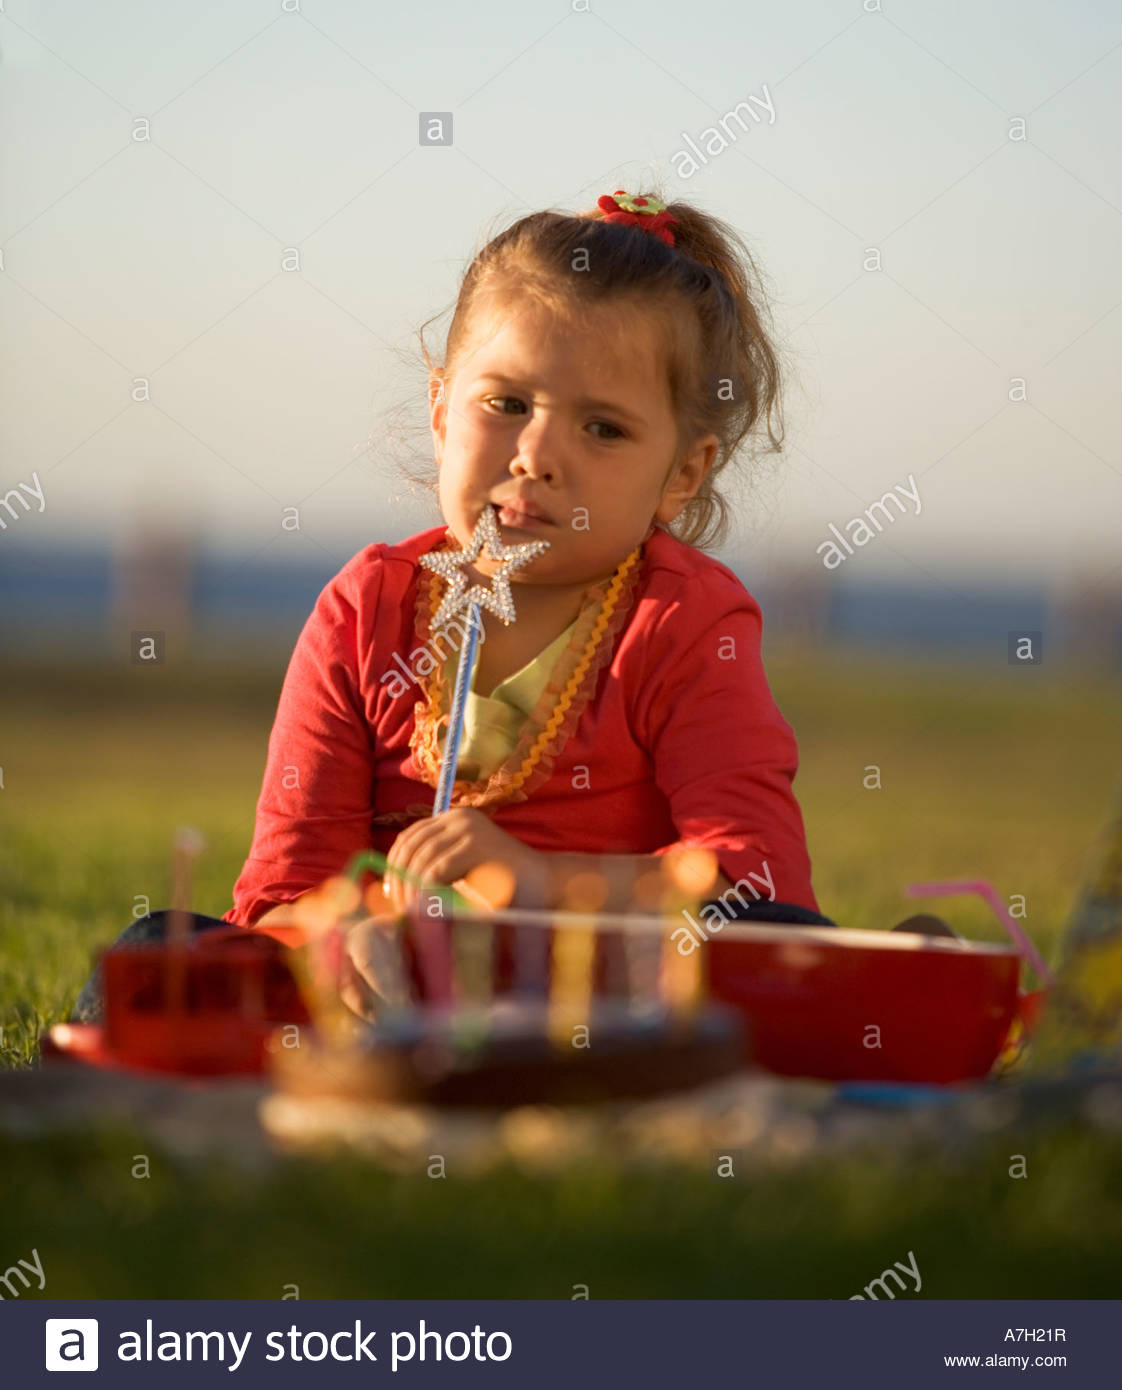 A young girl having a birthday picnic - Stock Image